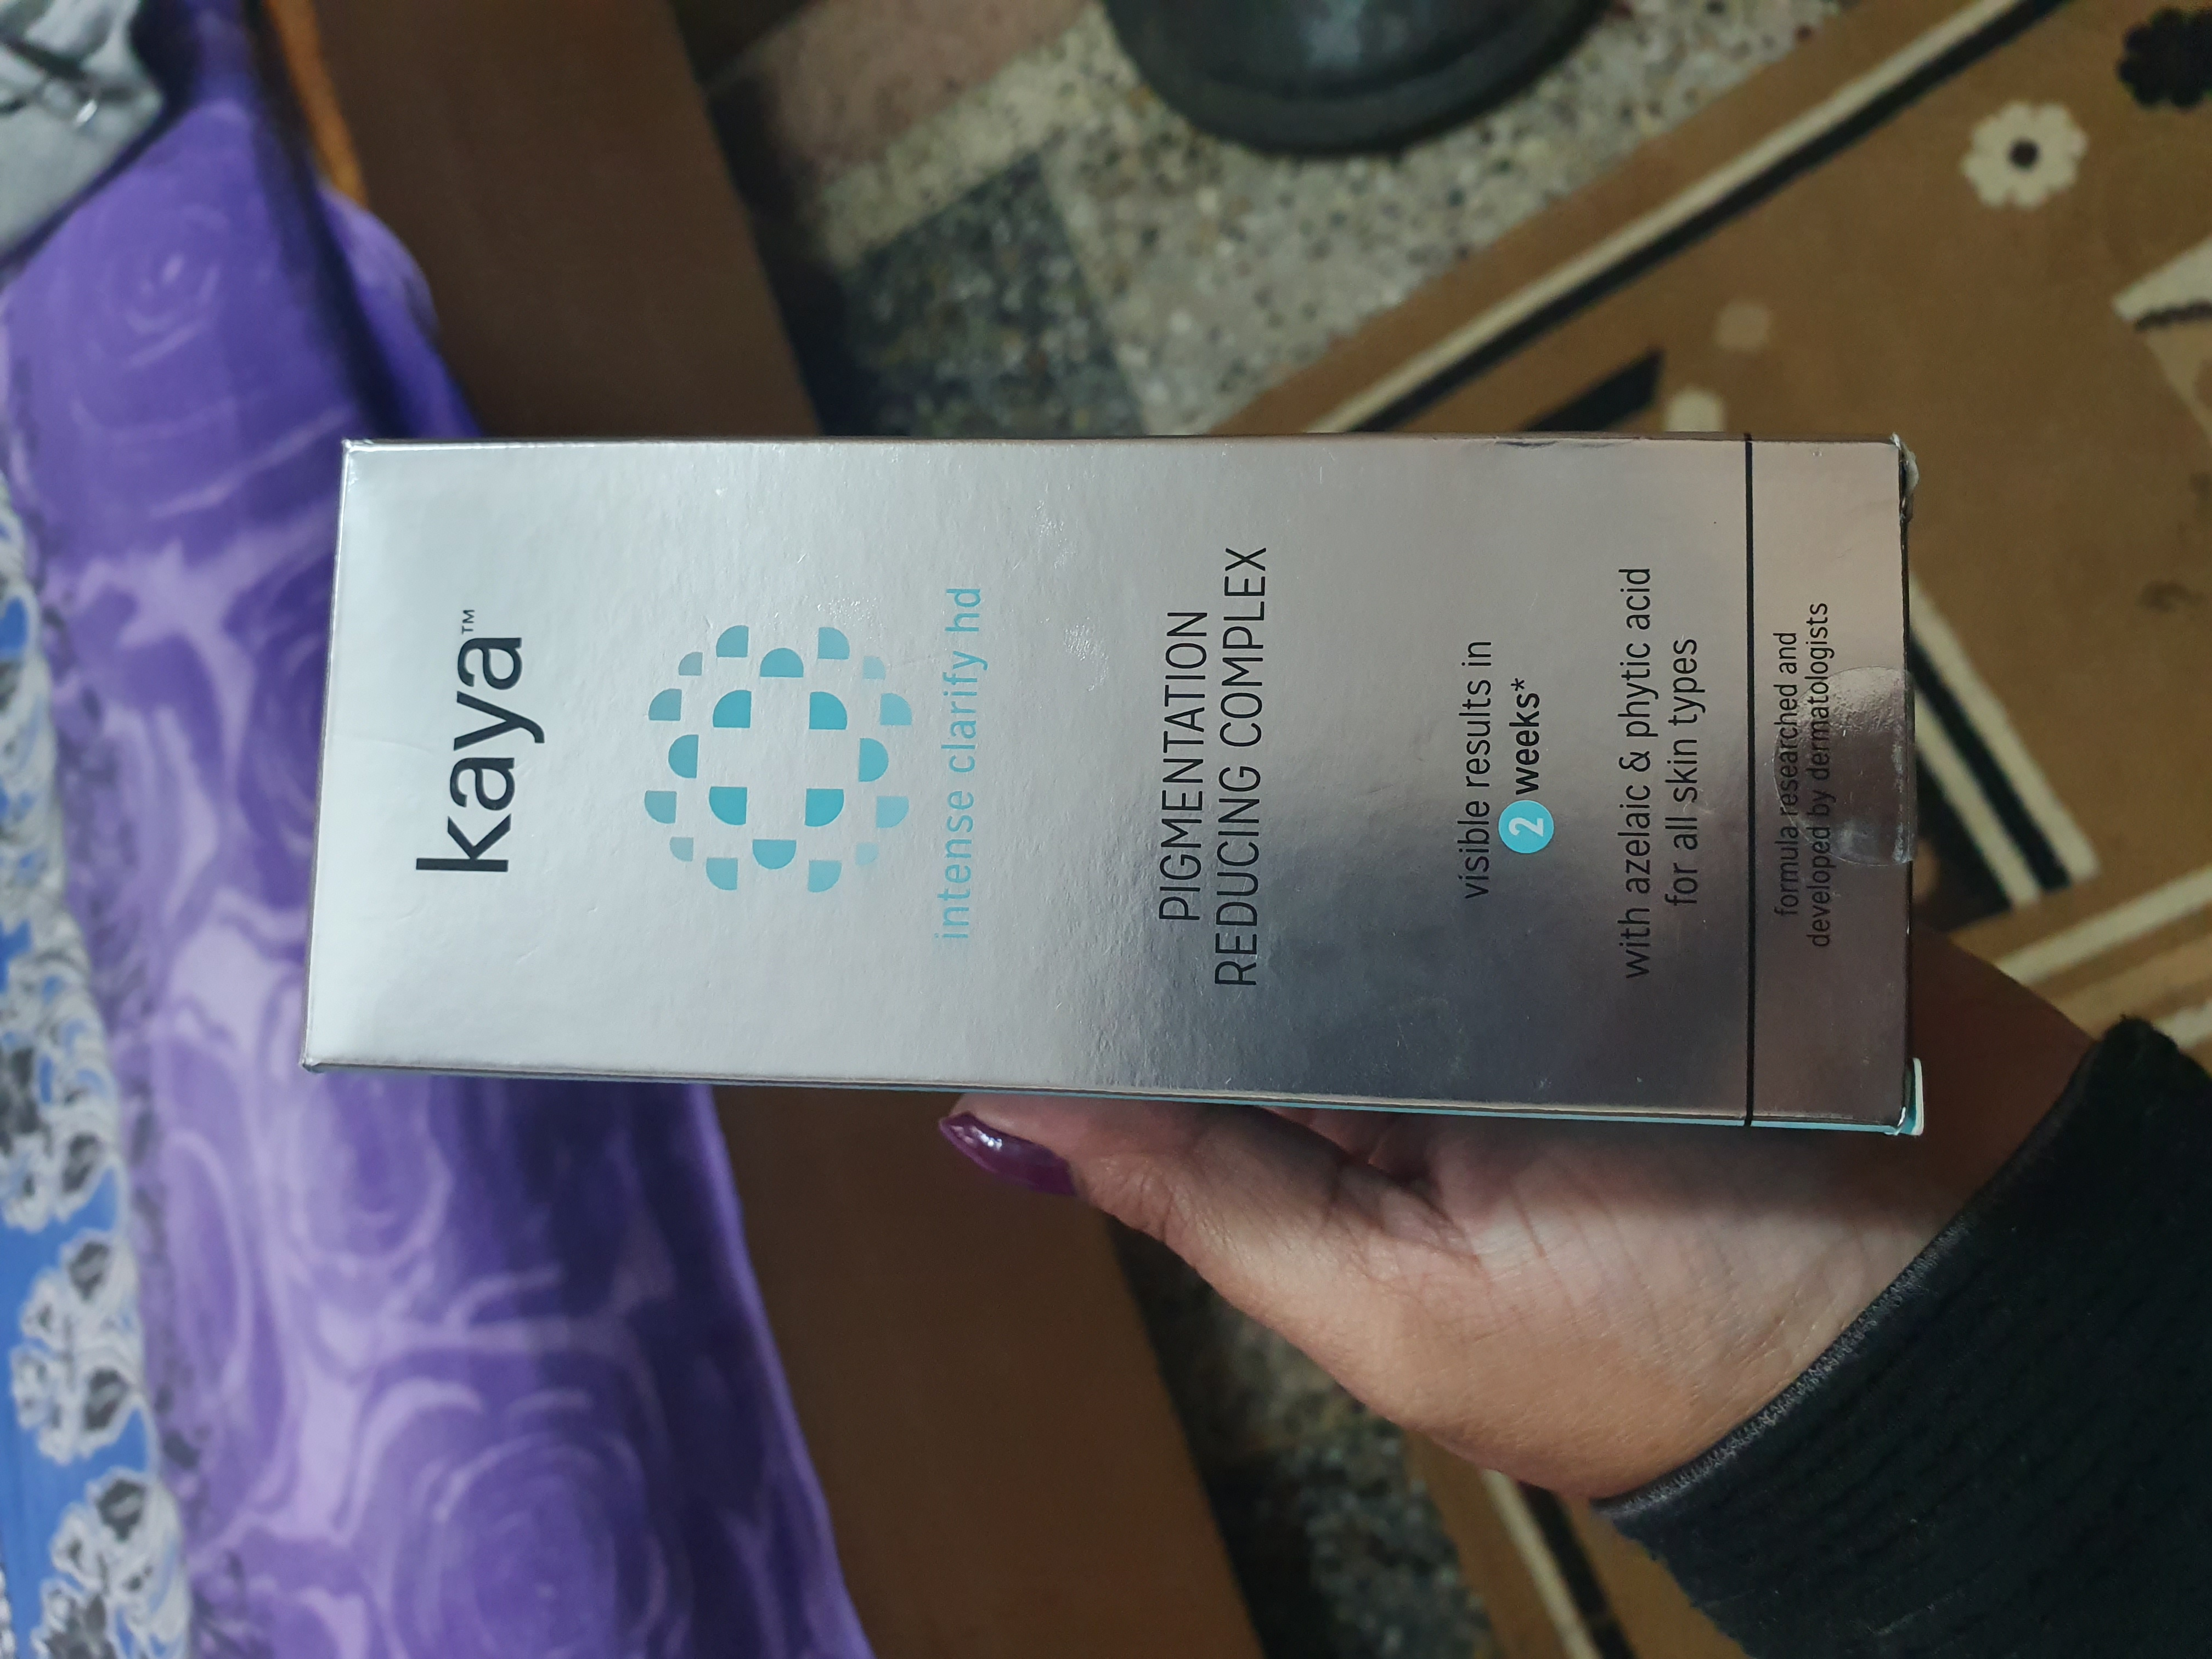 Kaya Pigmentation Reducing Complex-High quality night cream for pigmentations.-By ankita_agarwal-1